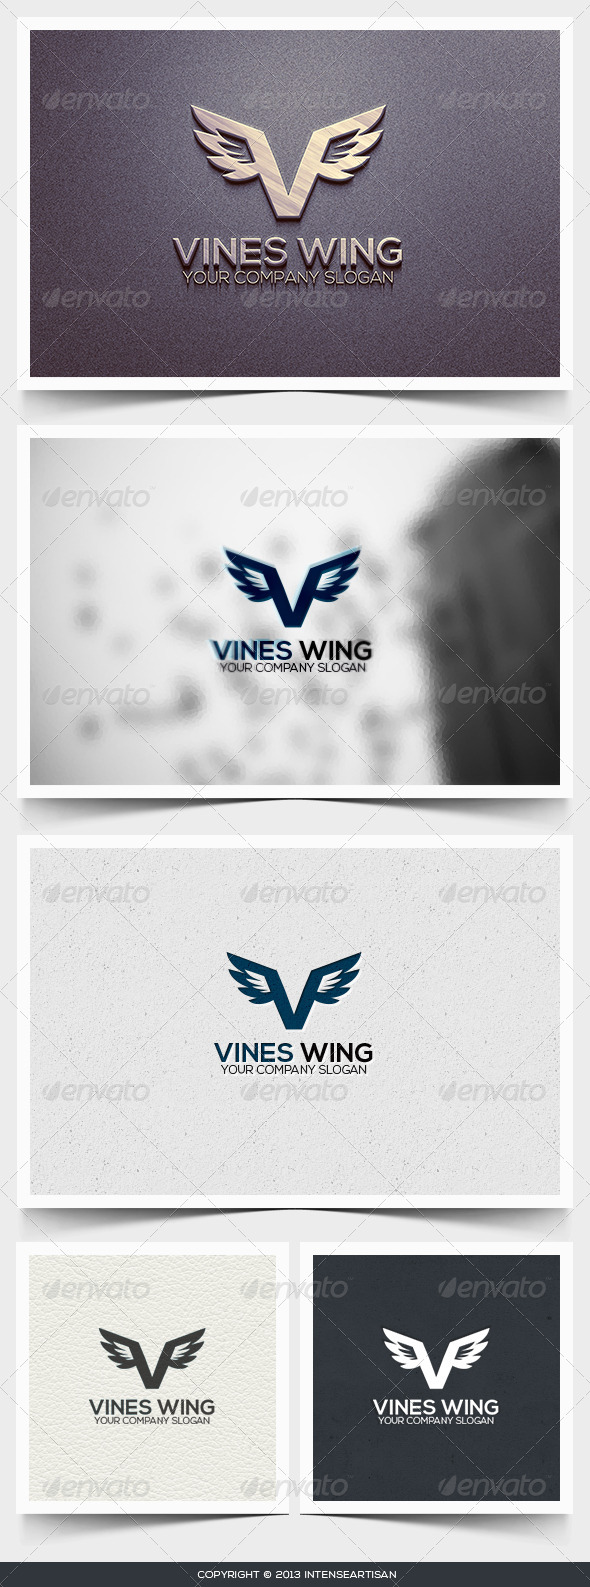 GraphicRiver Vines Wing Logo Template 6426637